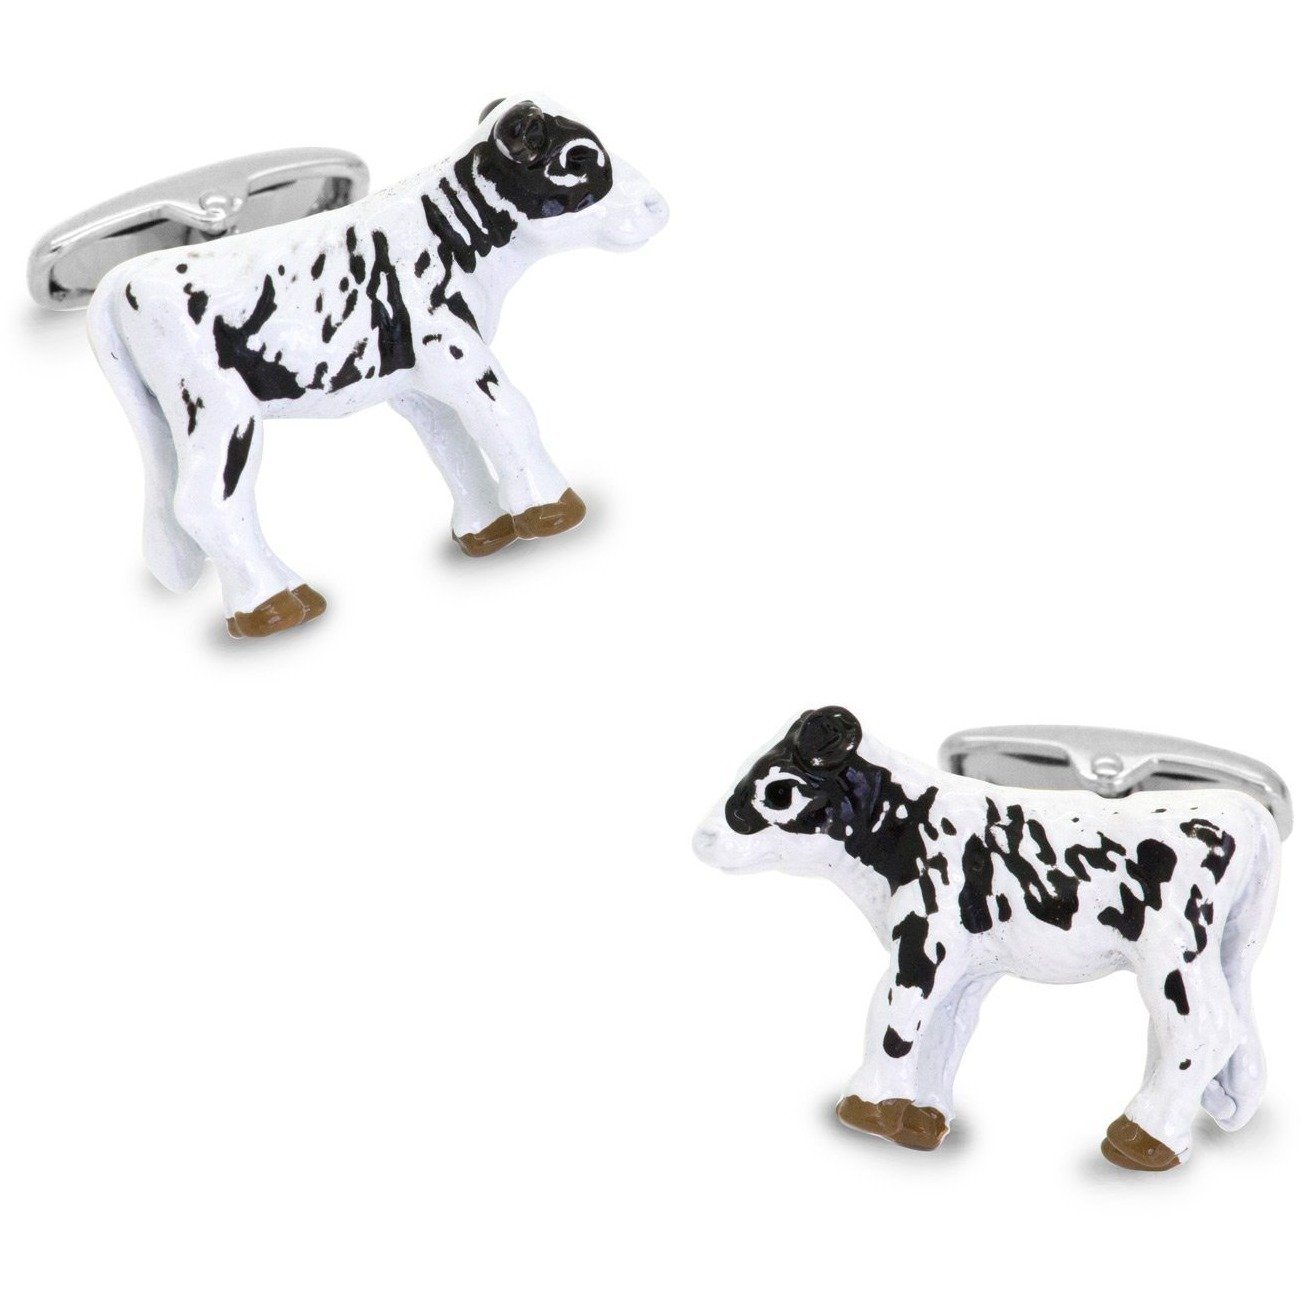 Black and White Cow Cufflinks 3D, Novelty Cufflinks, CL7080, Mens Cufflinks, Cufflinks, Cuffed, Clinks , Clinks Australia